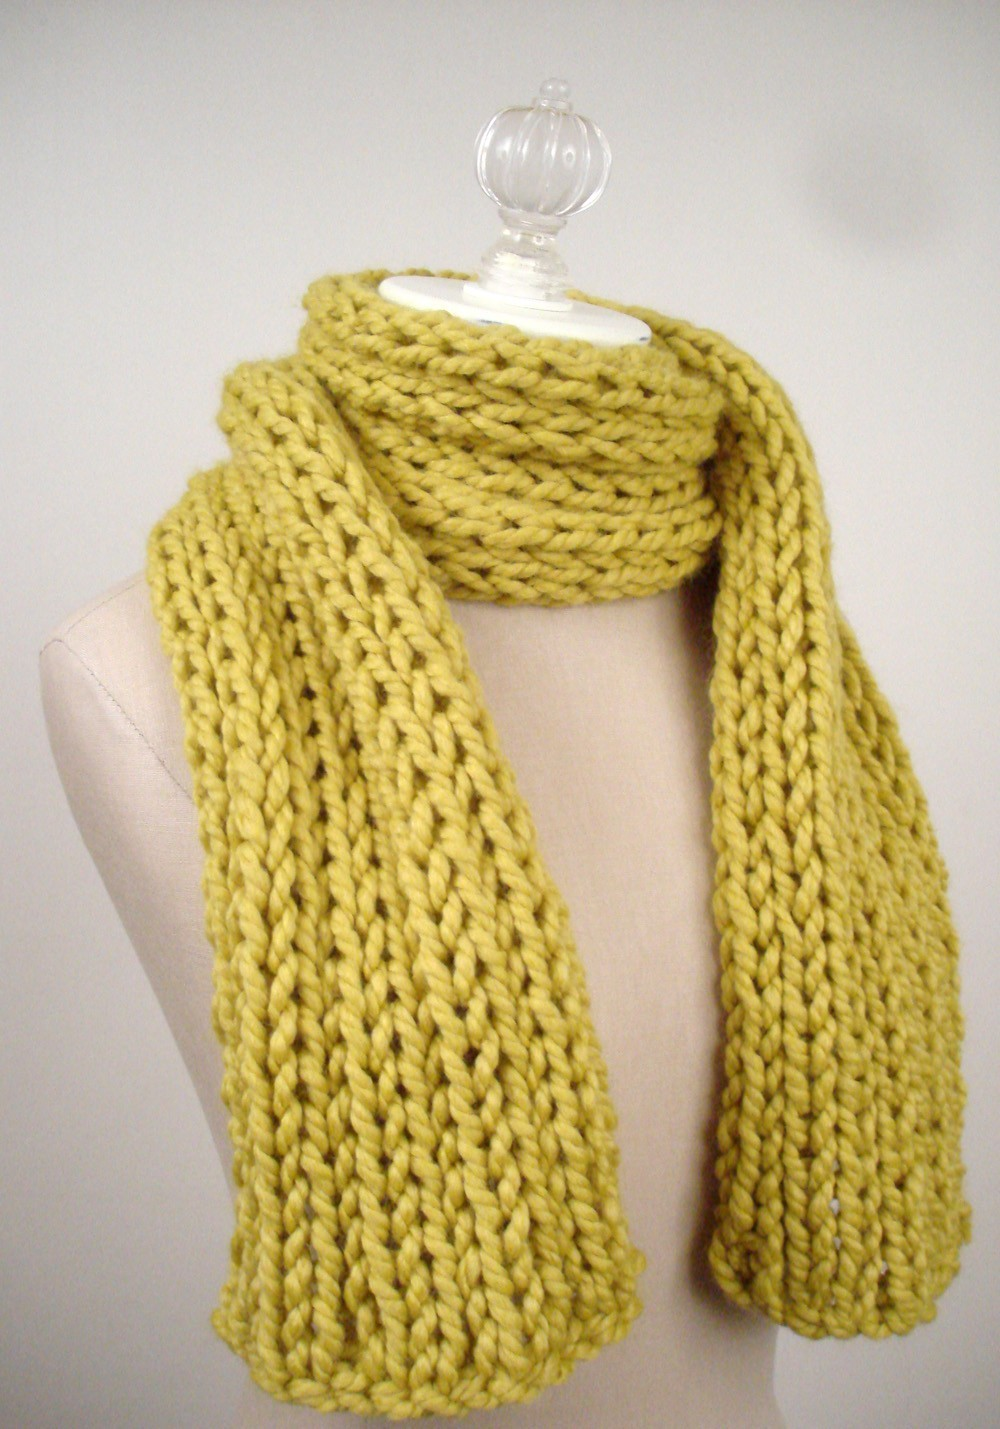 Types Of Knitting Stitches For Scarves : Scarf Knitting Patterns A Knitting Blog